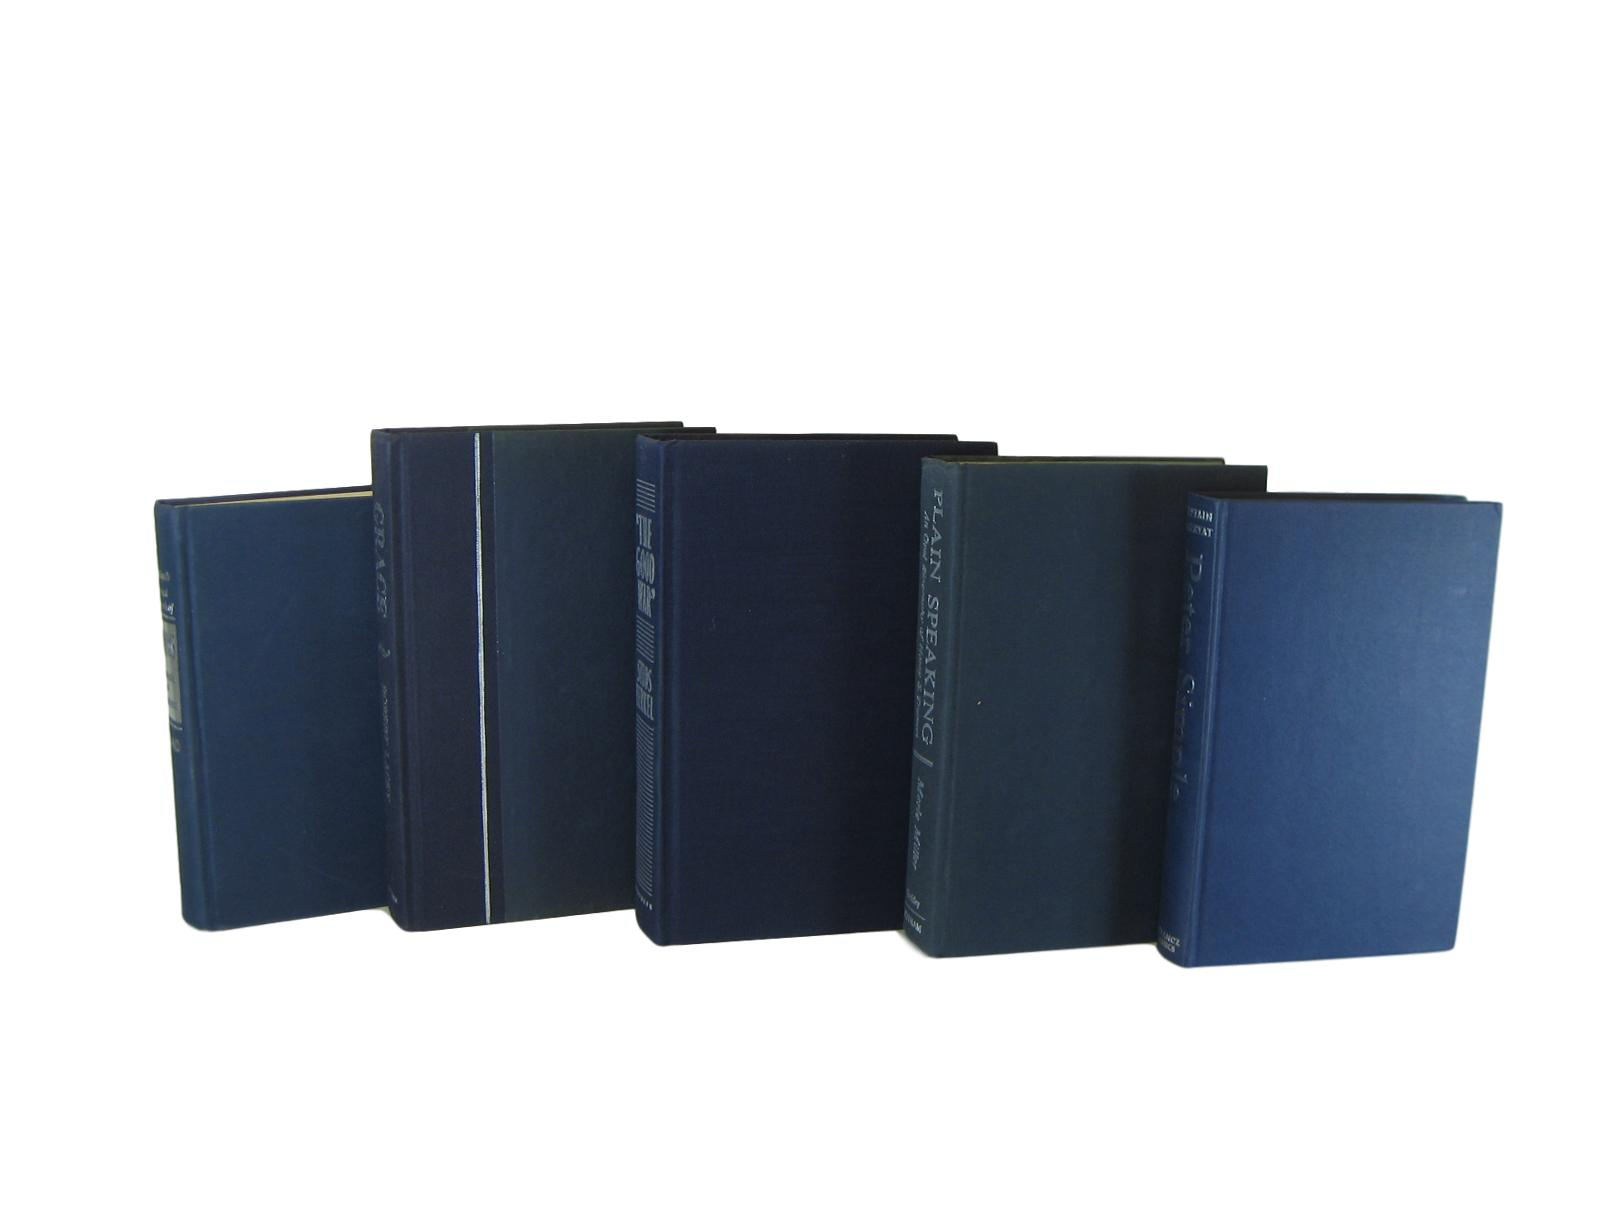 Blue  Decorative Books for Home Decor, S/5 - Decades of Vintage